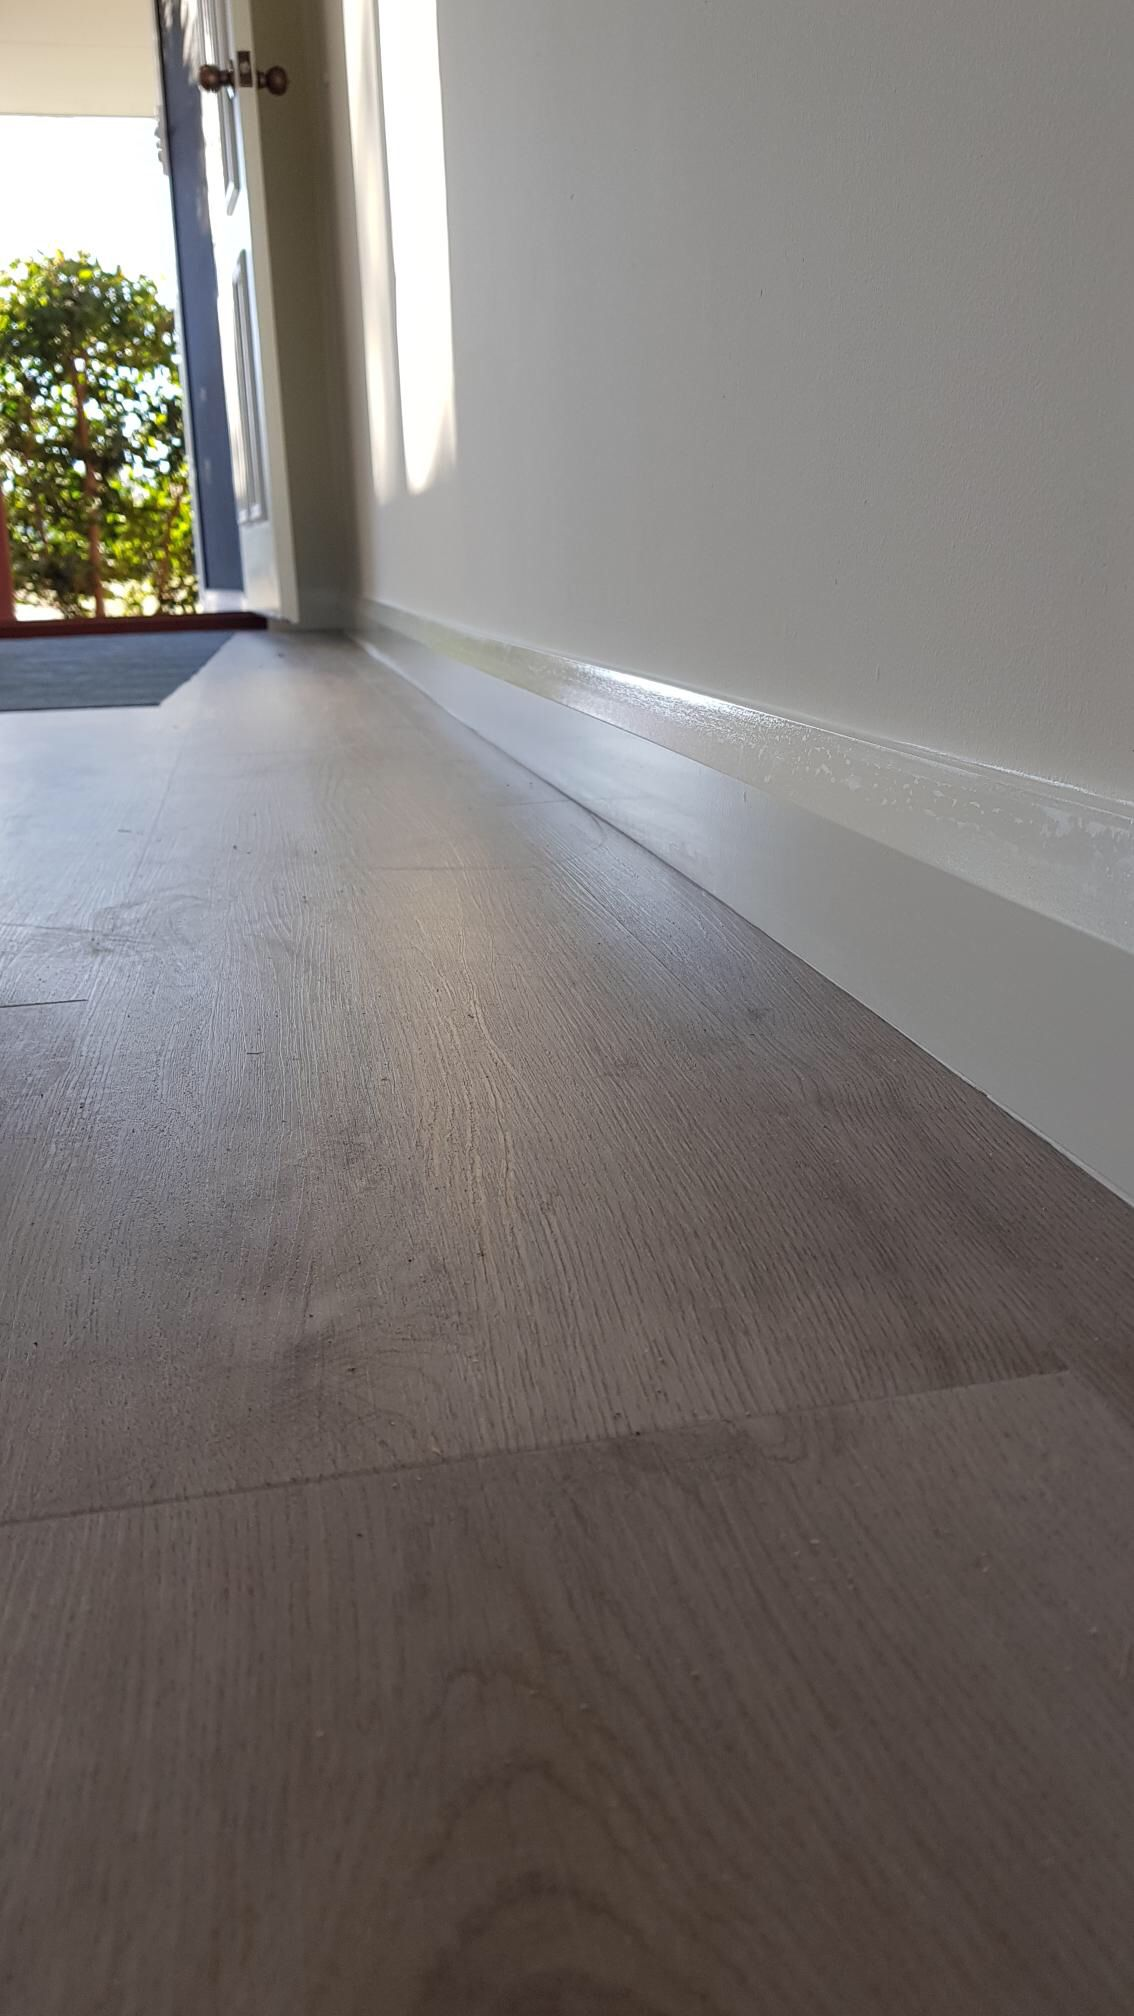 How To Complete Your Home In Style Skirting Boards Beautiful Homes Floor Skirting